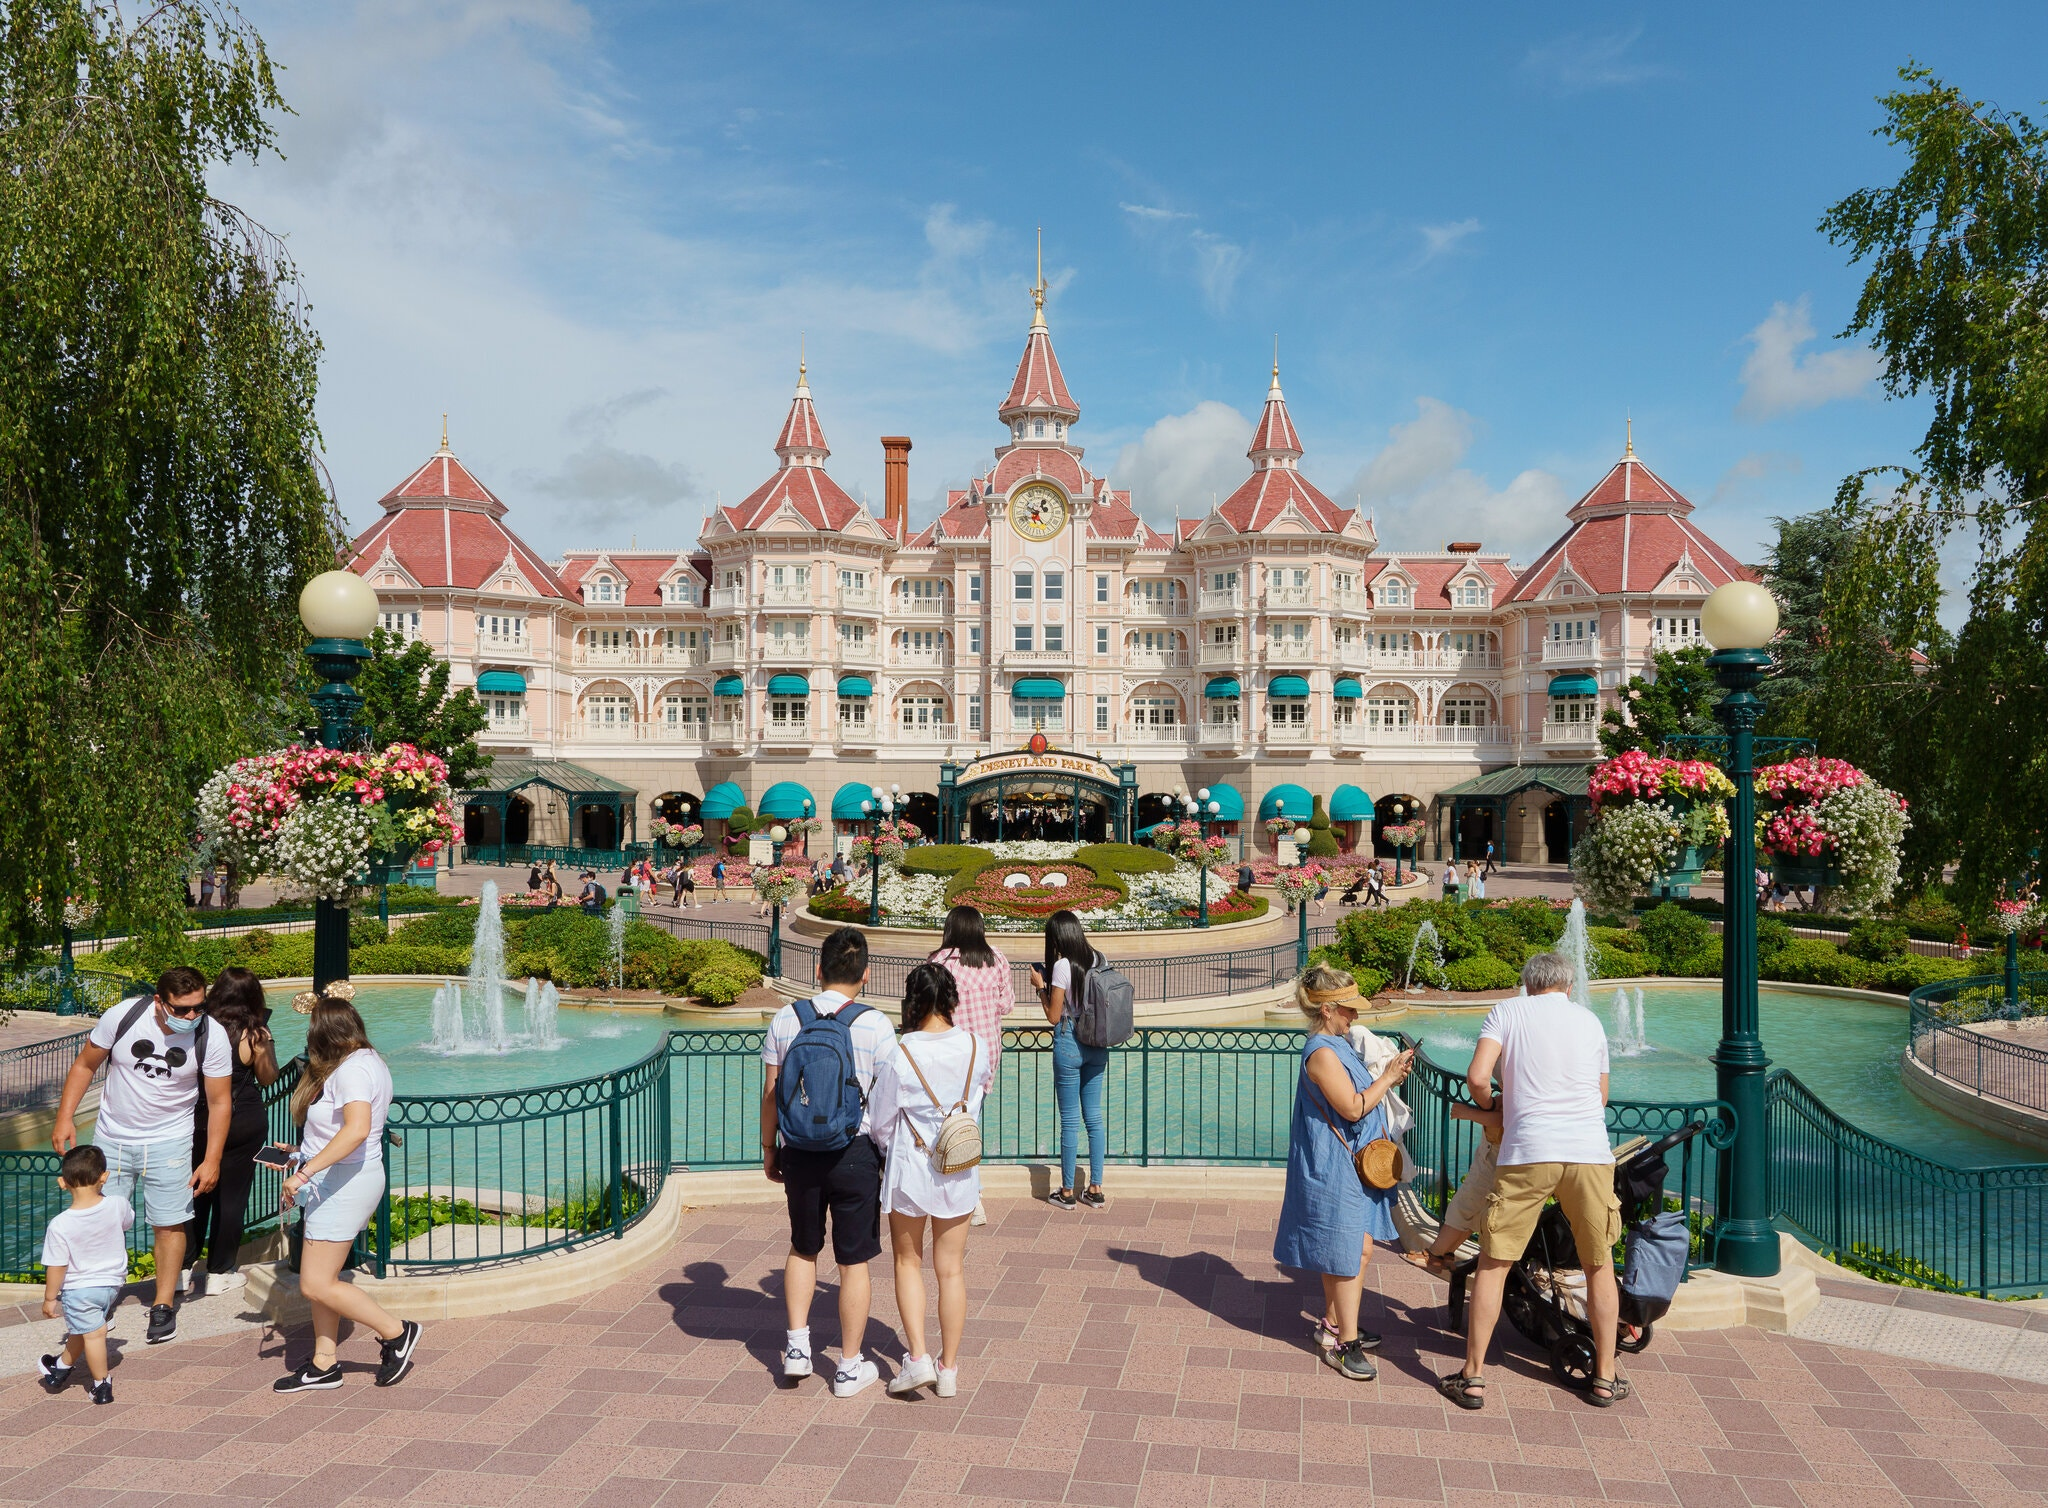 Disneyland Paris, Alex Crétey-Systermans for The New York Times